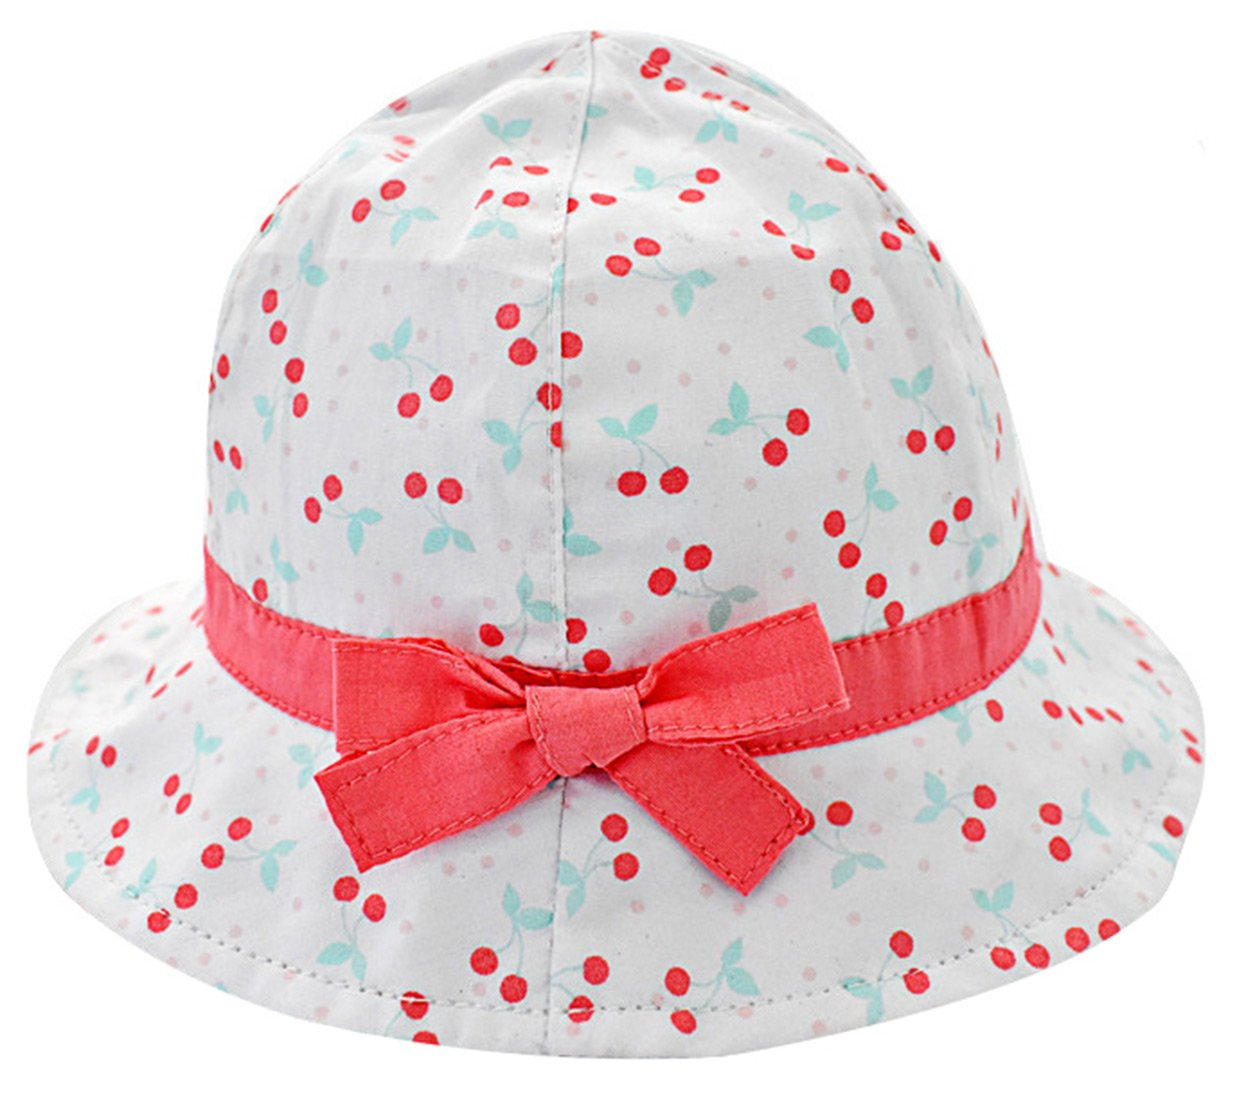 Happy Cherry Quick Dry Bucket Hats Baby/Toddler Girls Sun Hat For Swimming and Sun Protection Fisherman Hat With Bowknot For 10-24 M